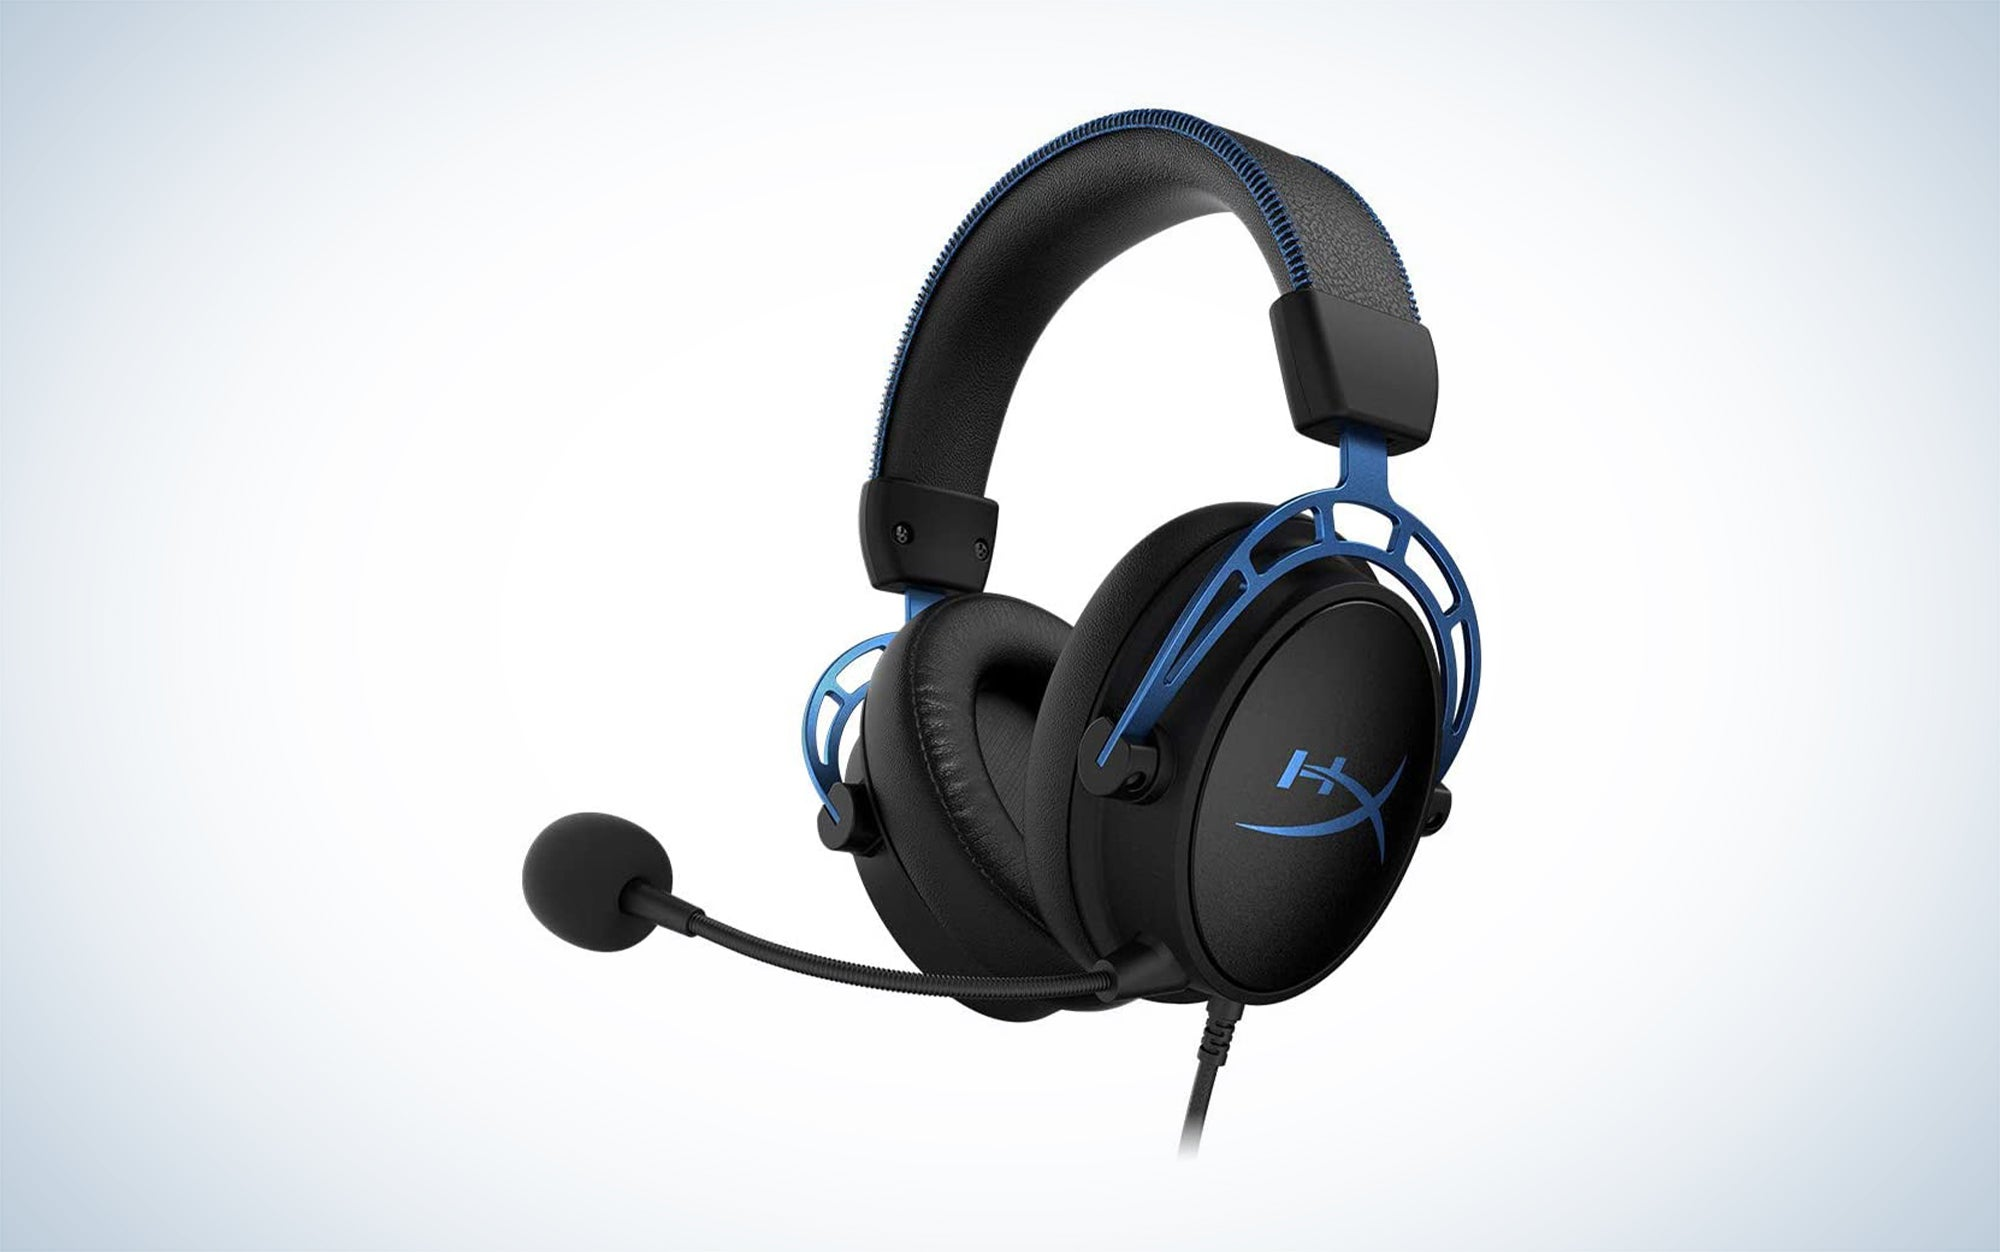 HyperX Cloud Alpha S - PC Gaming Headset is one of the best wired gaming headset options.